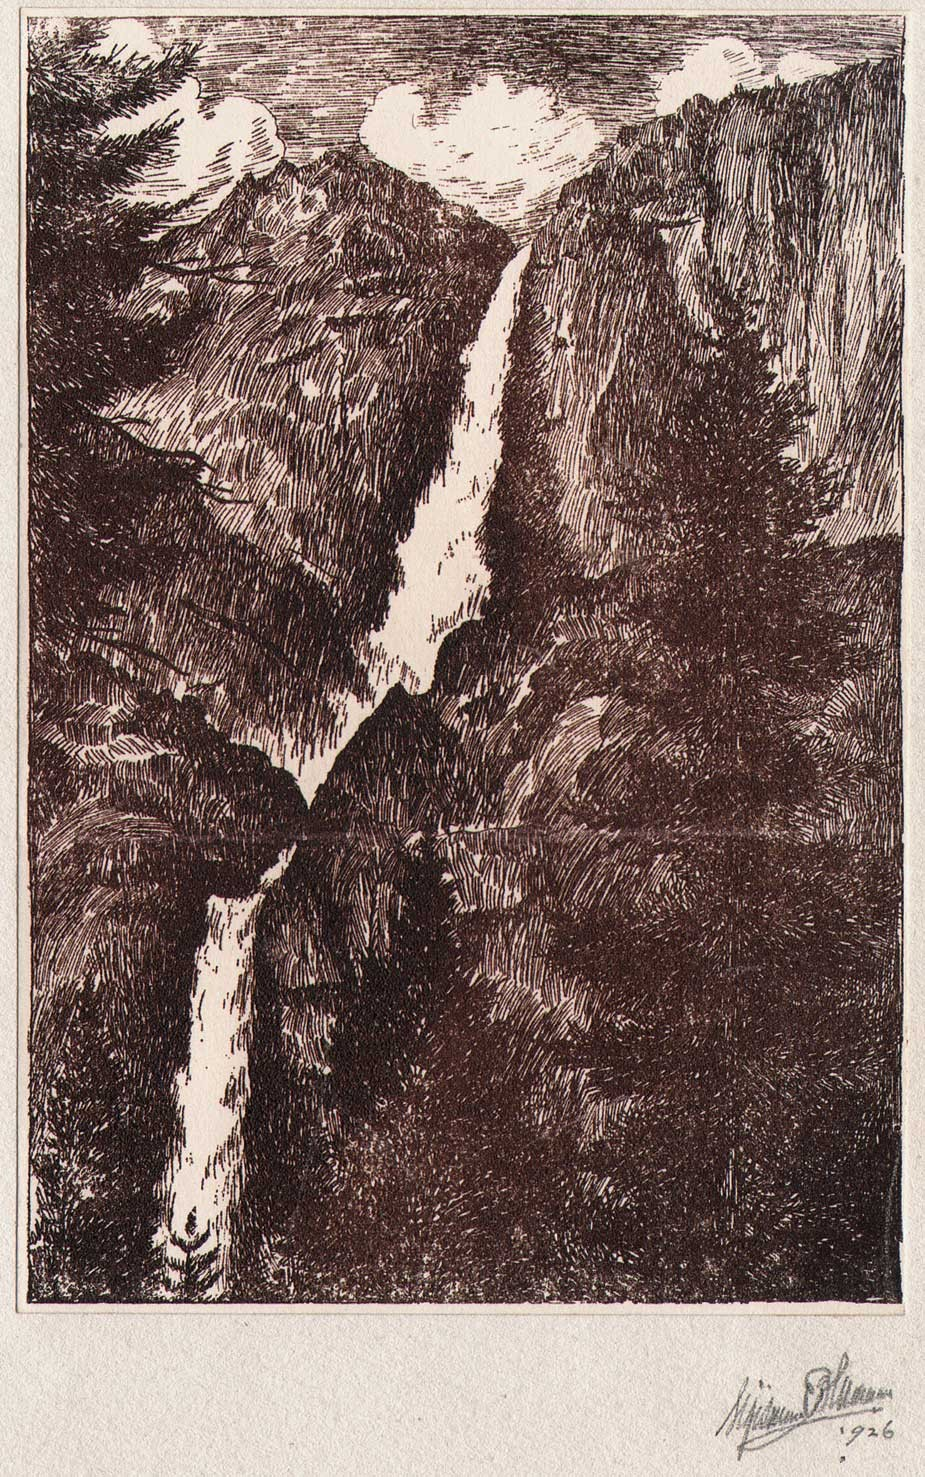 25-photo-etching-yosemite-